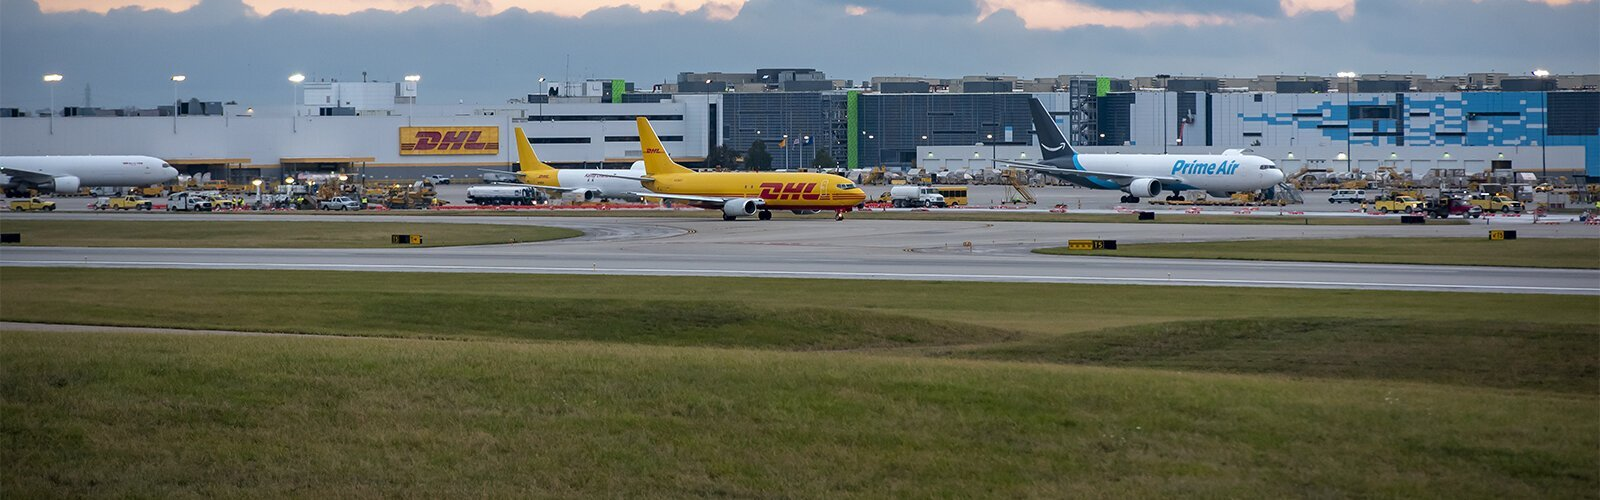 DHL established its international Americas Hub at CVG in 2009 and has invested hundreds of millions to expand the operations, including building a new ramp for additional warehouse space, more aircraft gates to accommodate route expansions, and more.